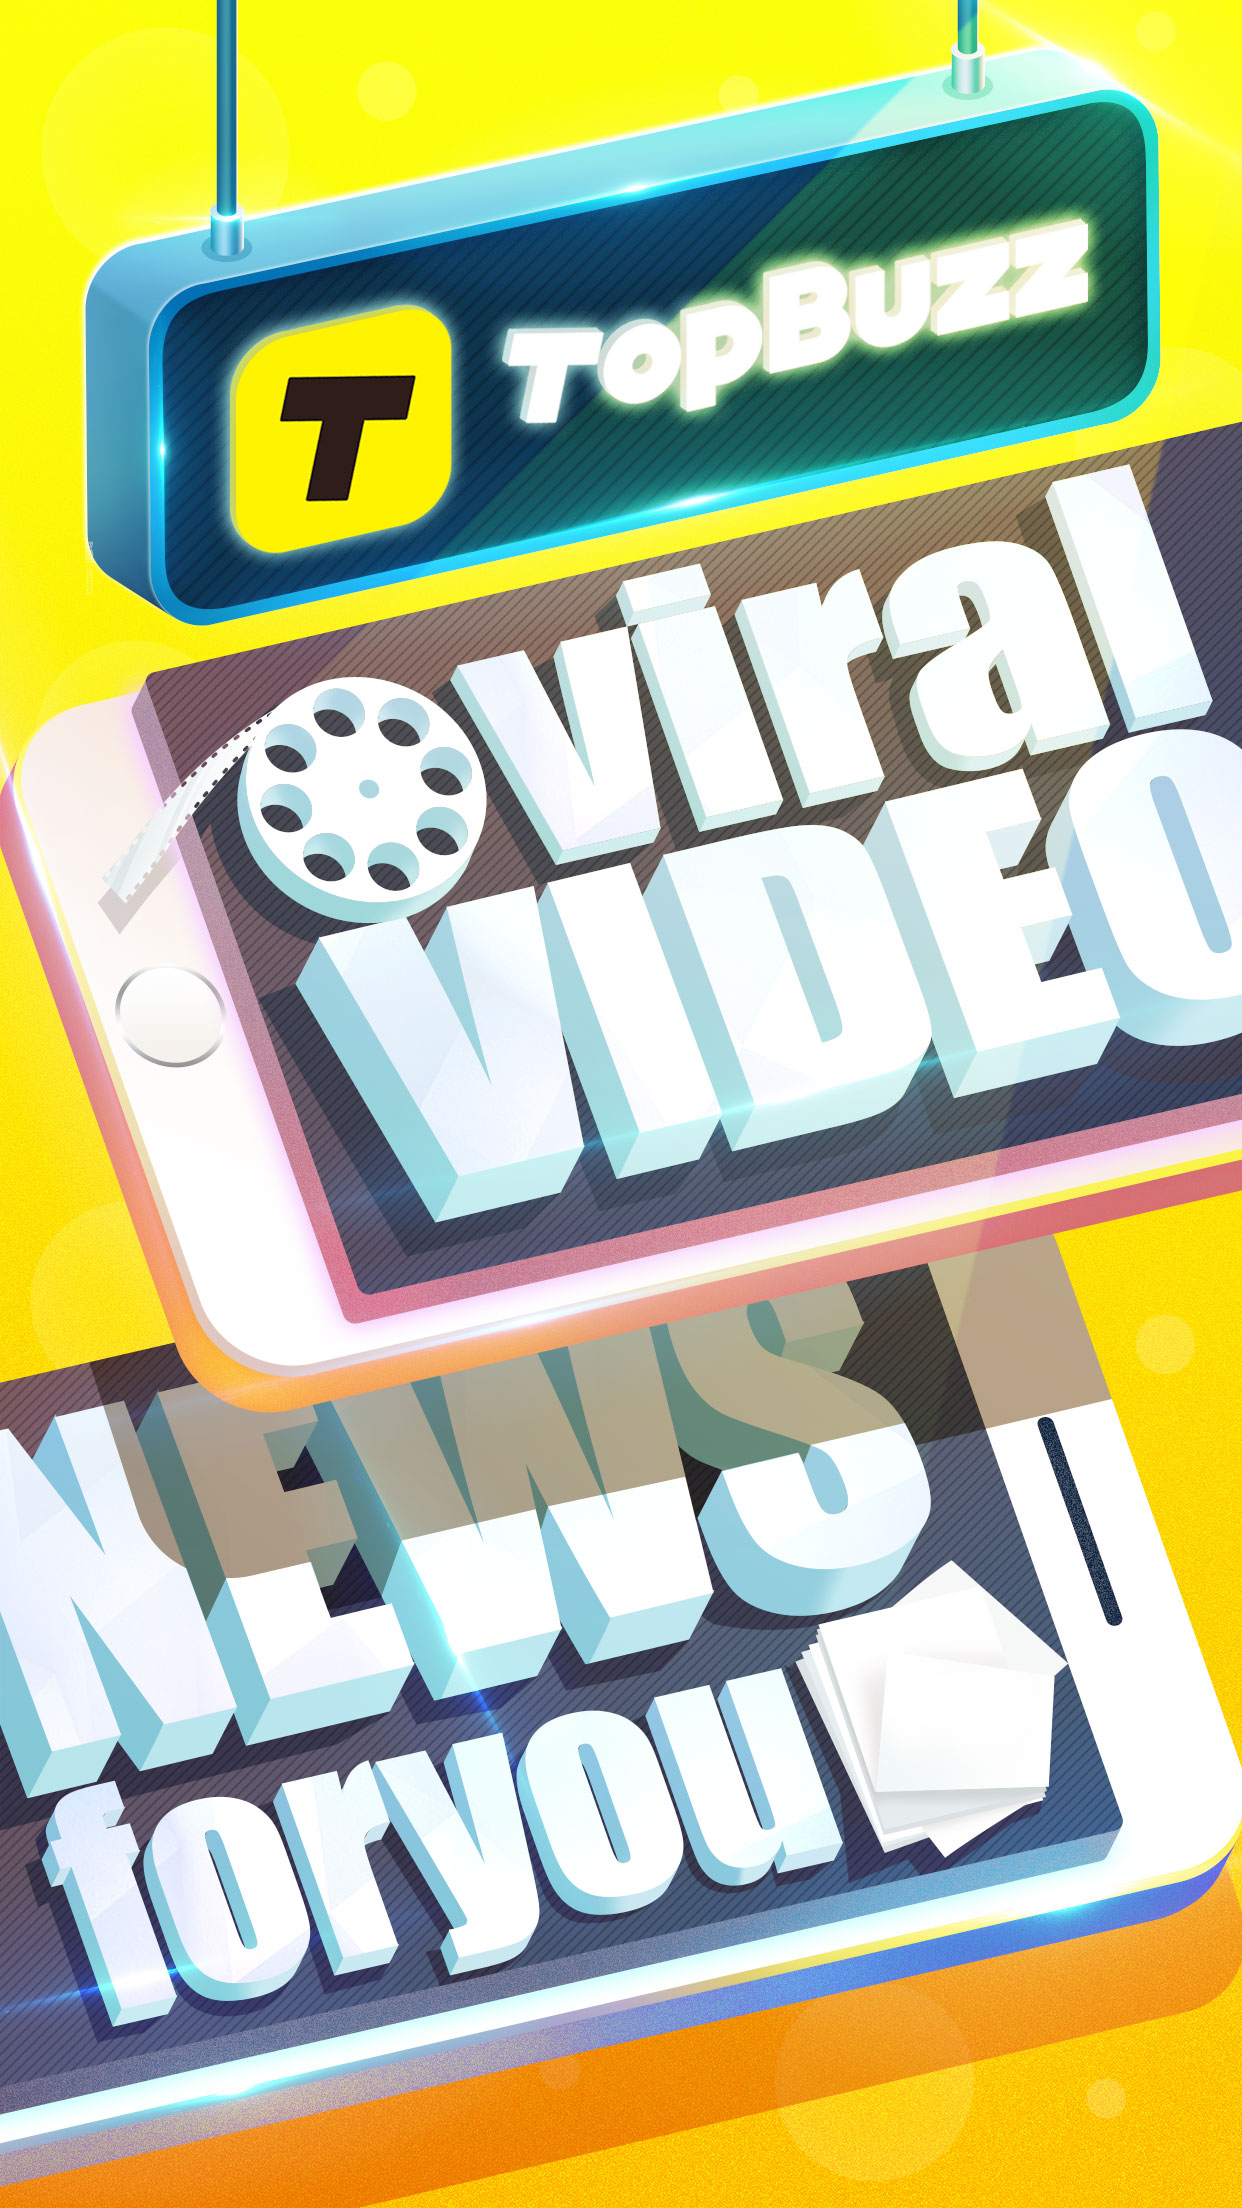 Local Breaking News From TopBuzz: Why People Need More Fun in Their News